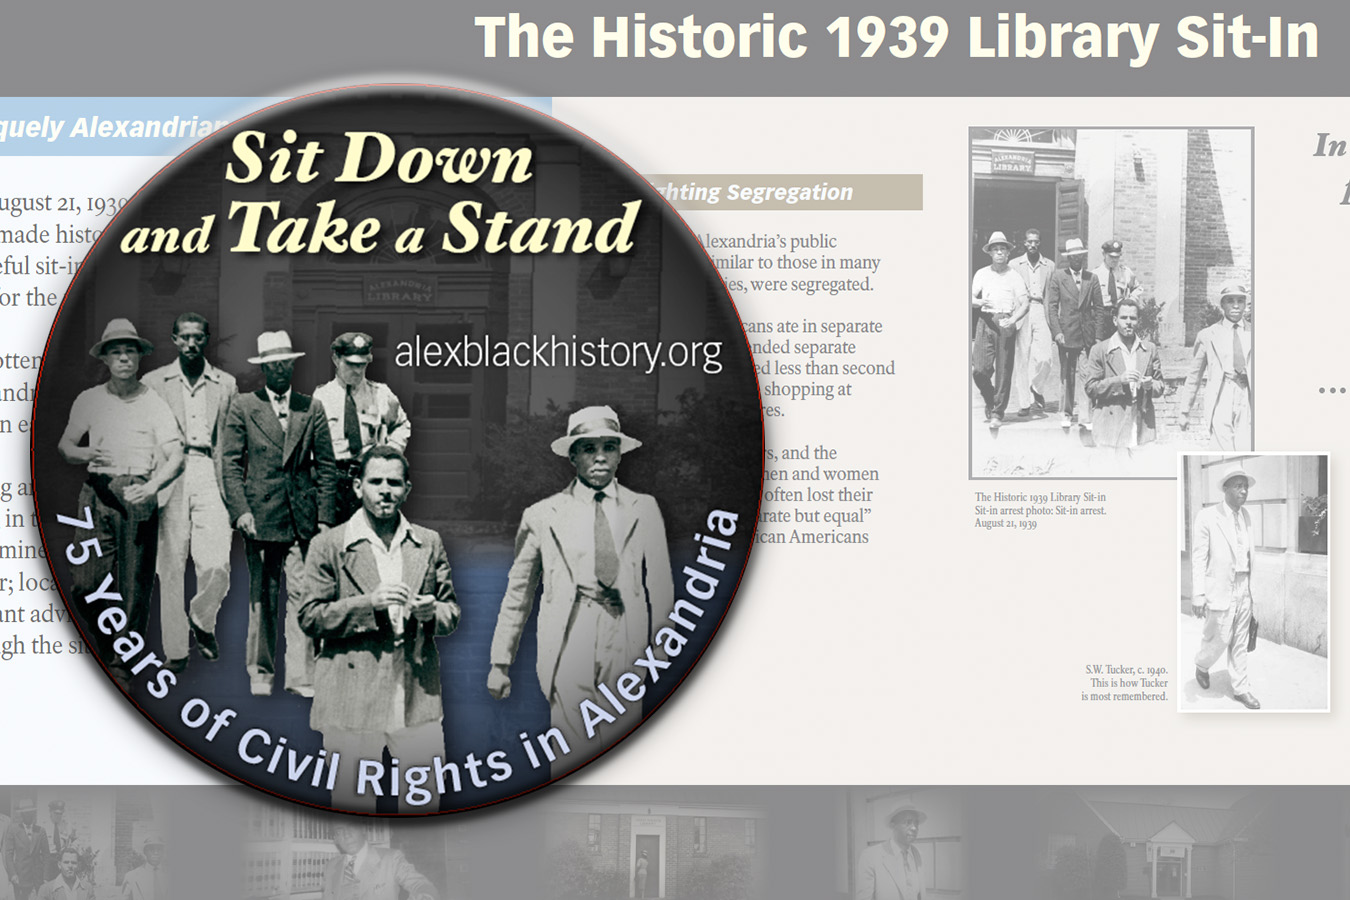 ABHM button : Button for Alexandria Black History Museum commemorating 75 years of Civil Rights